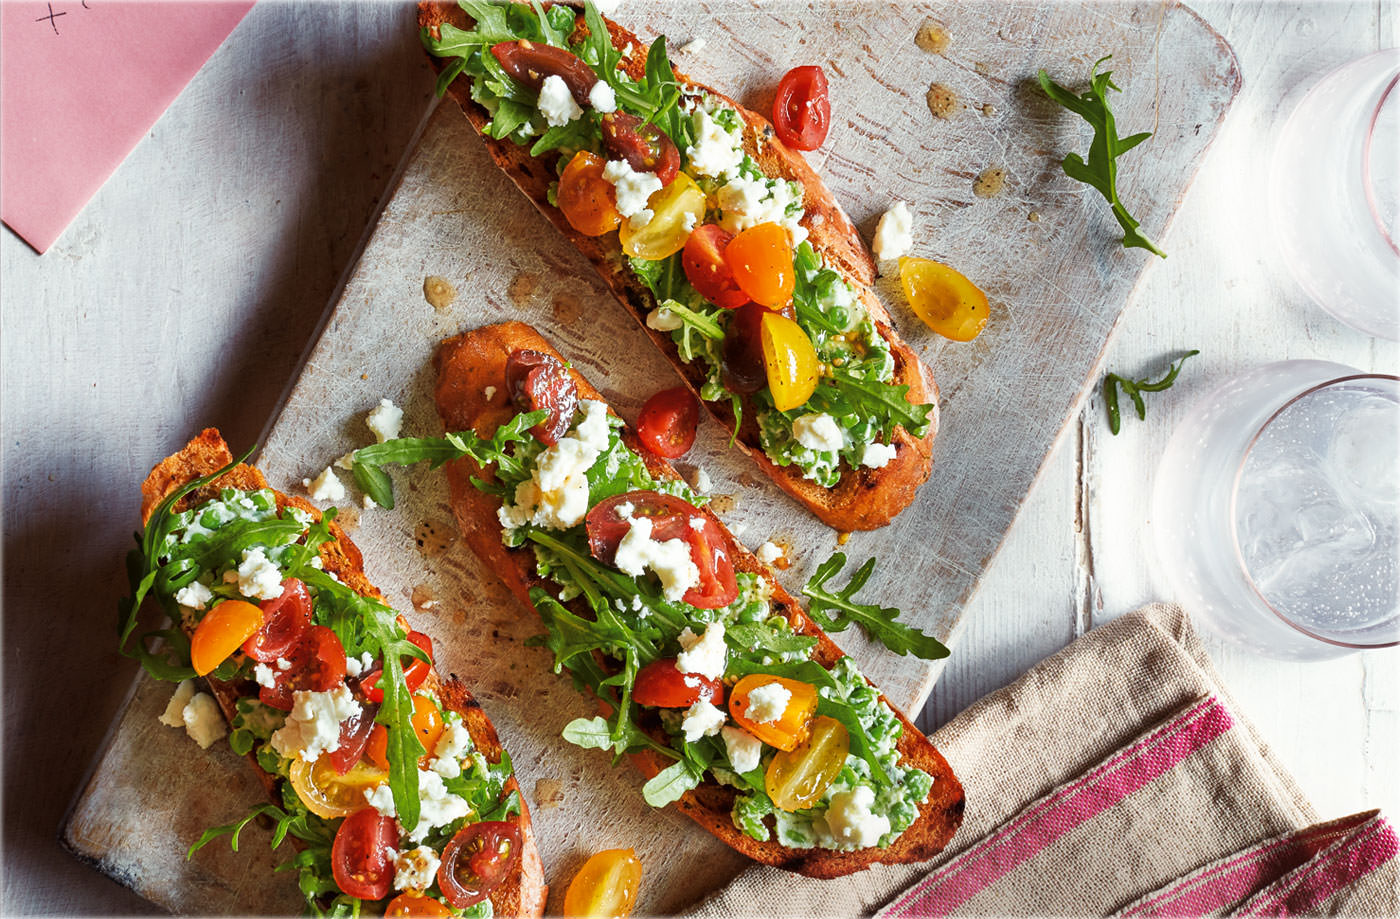 Pea, feta and tomato bruschetta recipe